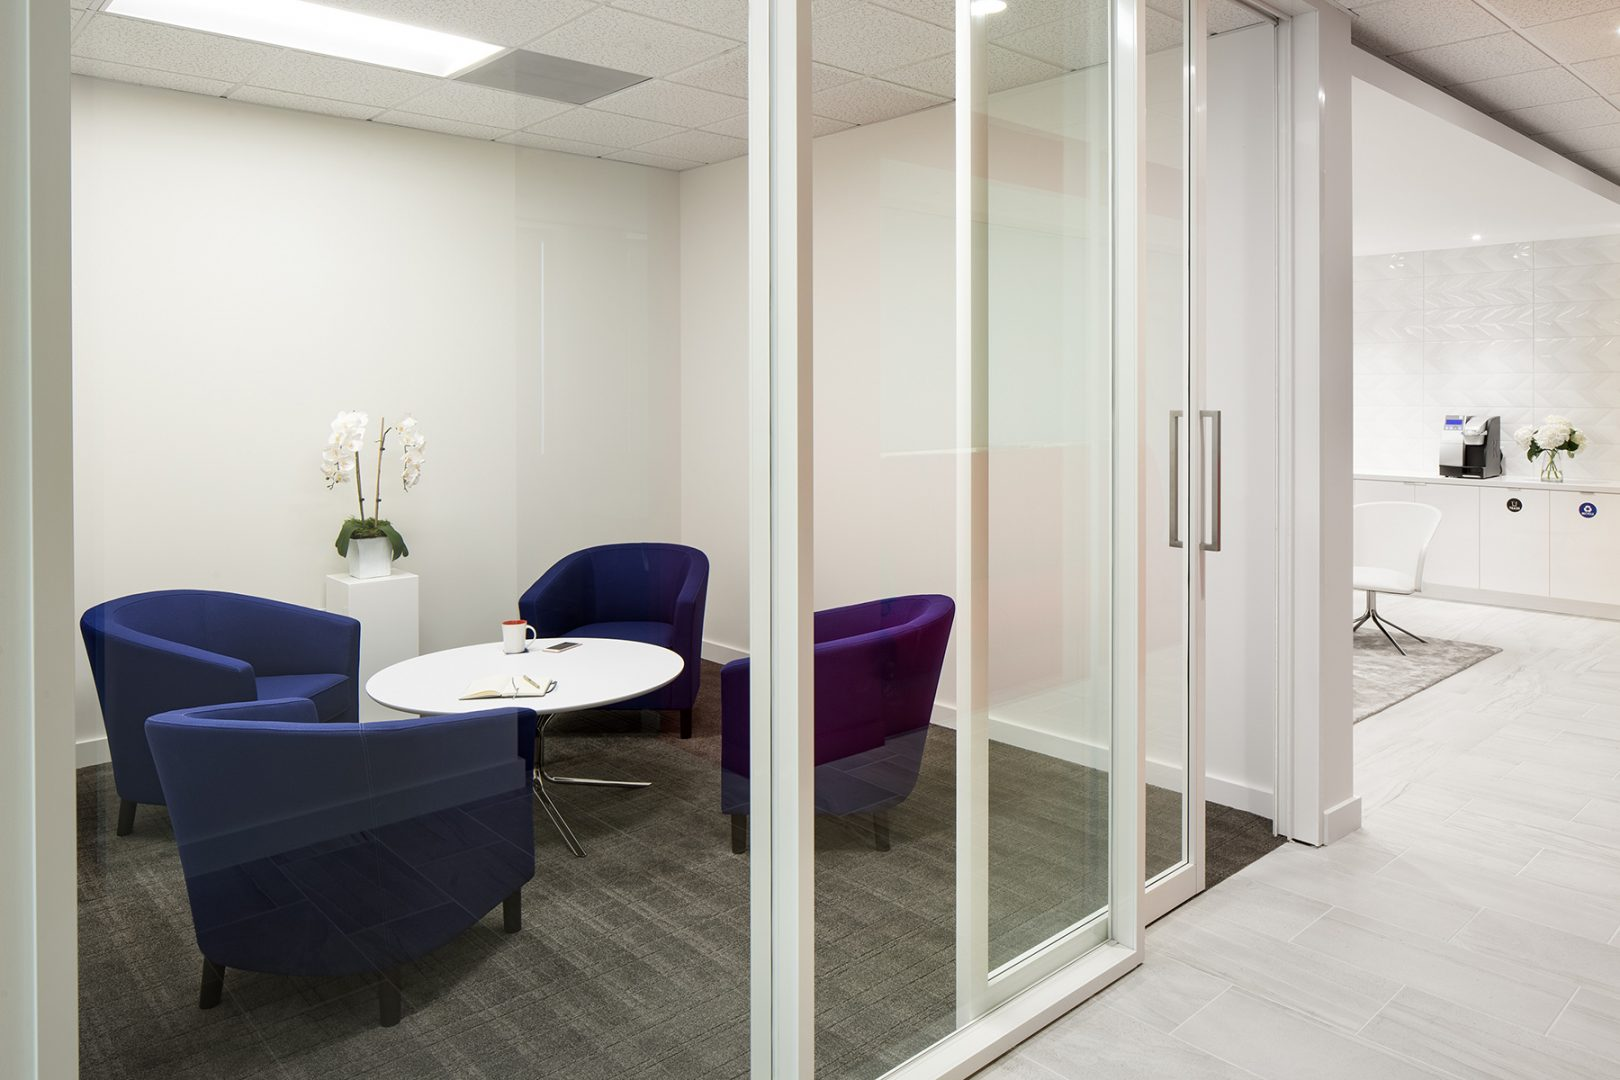 Corporate Interior Law Design McFarland Houston huddle room